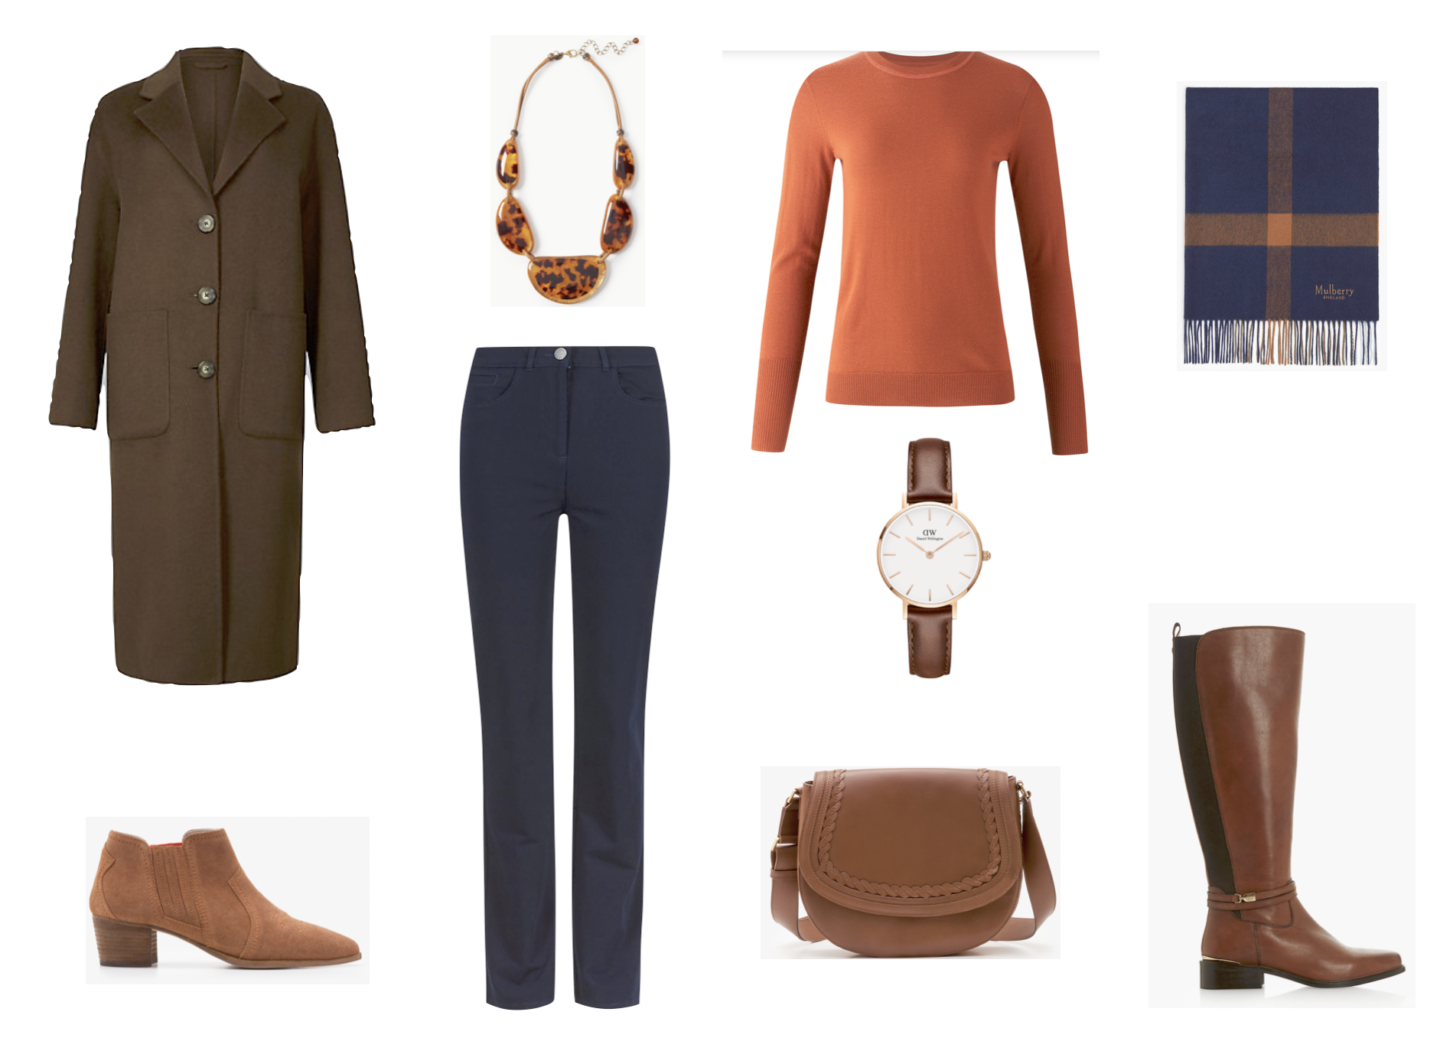 Brown and navy outfit combinations